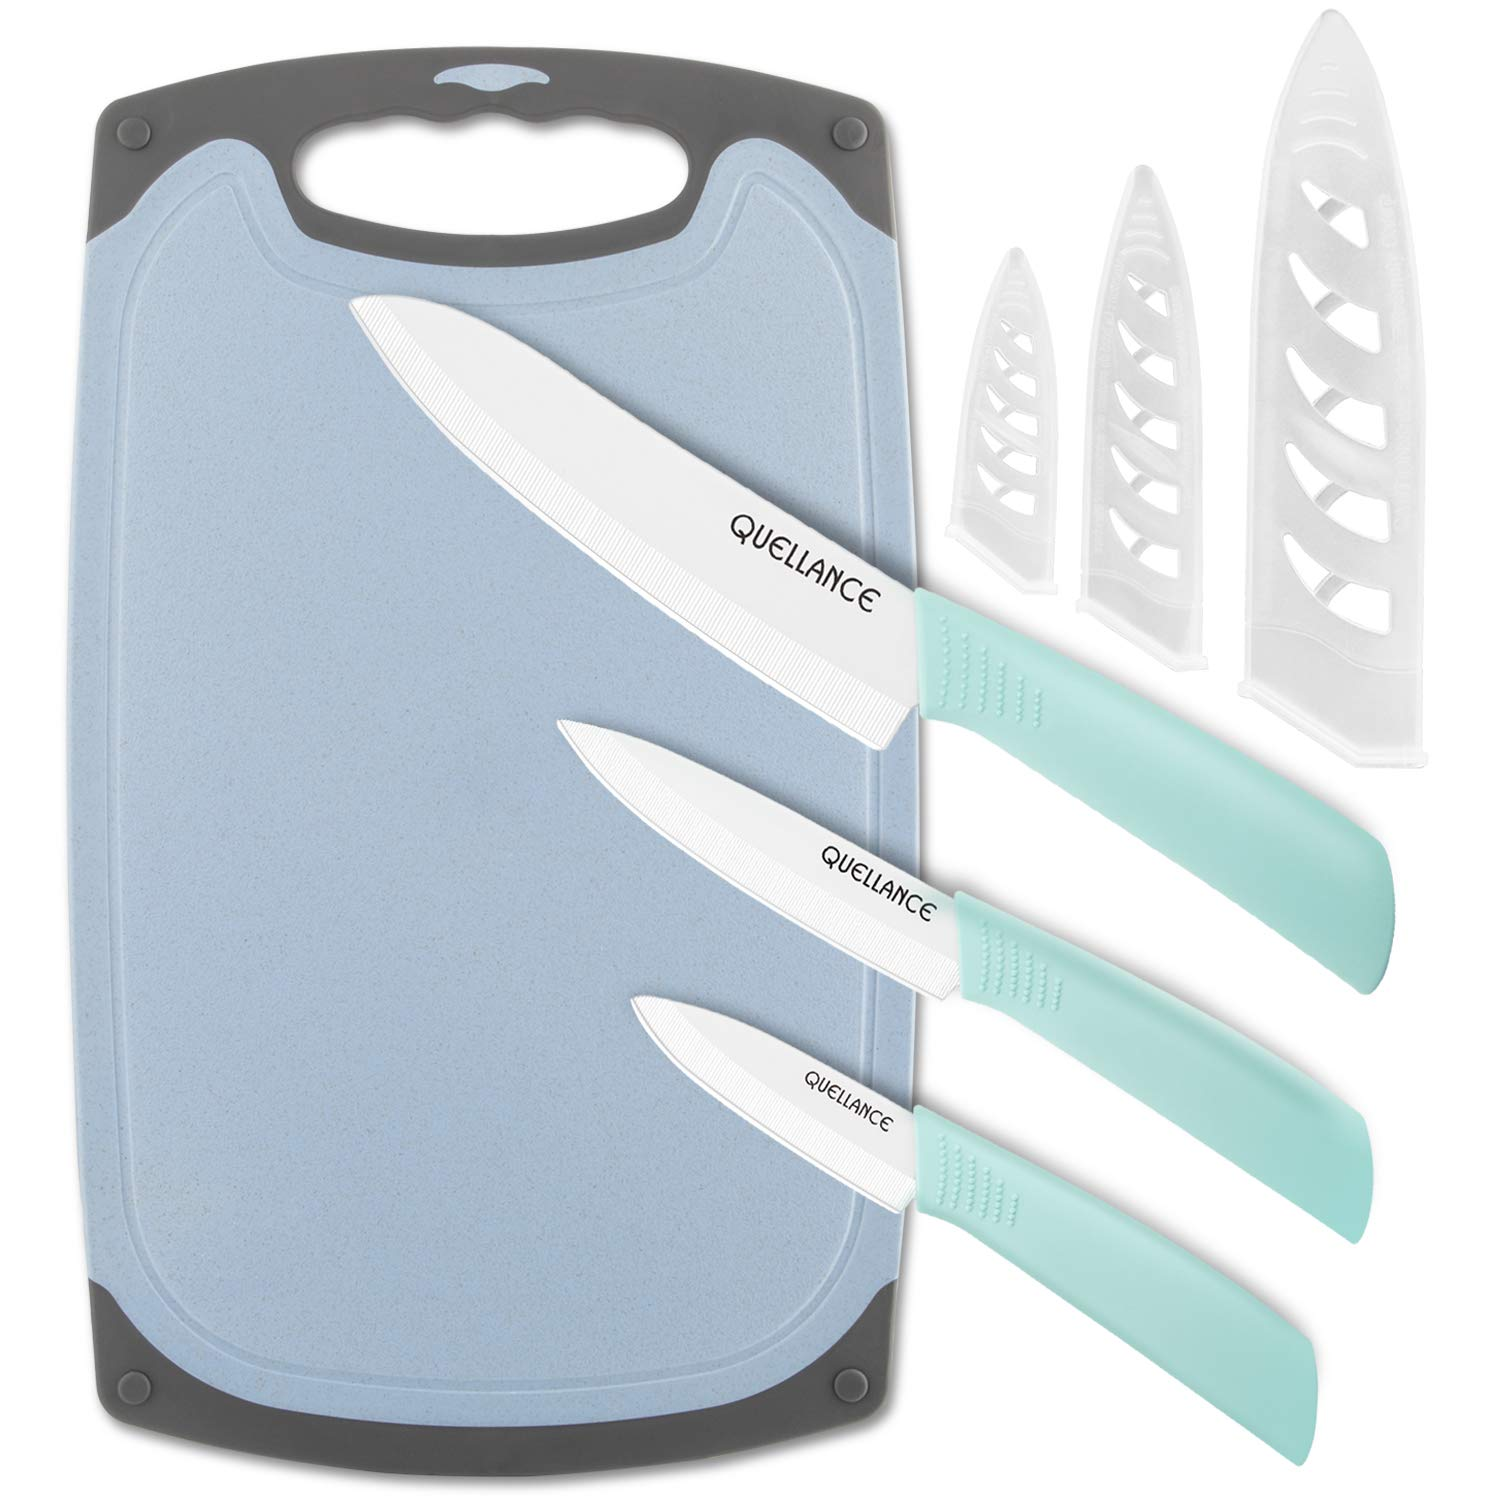 Ceramic Knife Set, Kitchen Knives with Matching Sheath Covers and Cutting Board, Very Sharp Ceramic Chef Knife, 6'' Chef Knife, 4'' Utility Knife, 3'' Paring Knife and 1 Rectangle Chopping Board by QUELLANCE